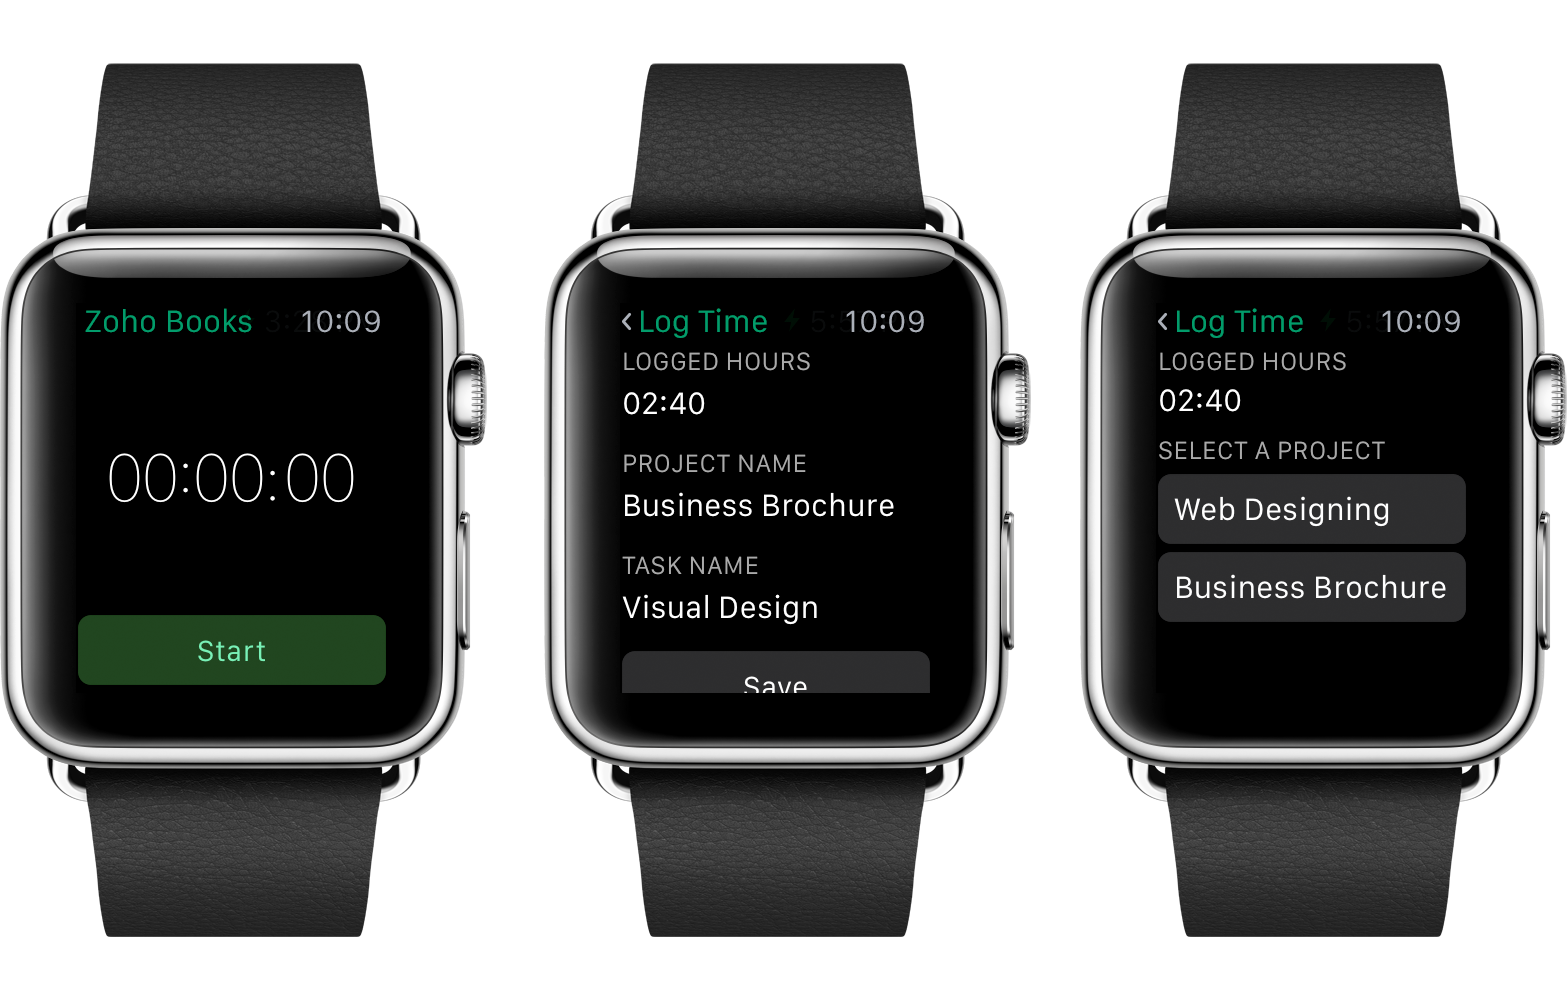 zoho-books-apple-watch-screens